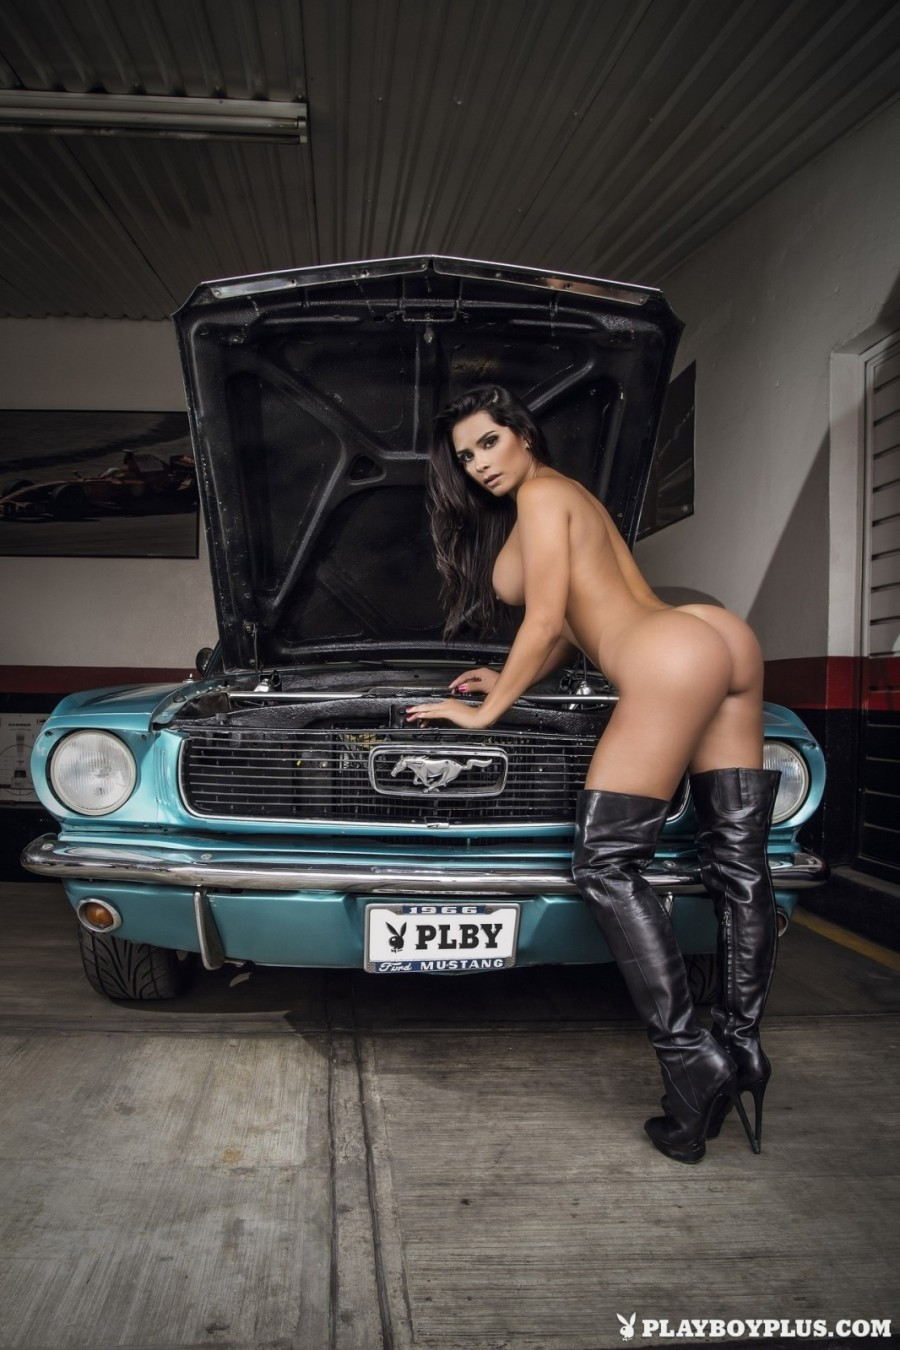 Burning hot brunette strips in garage